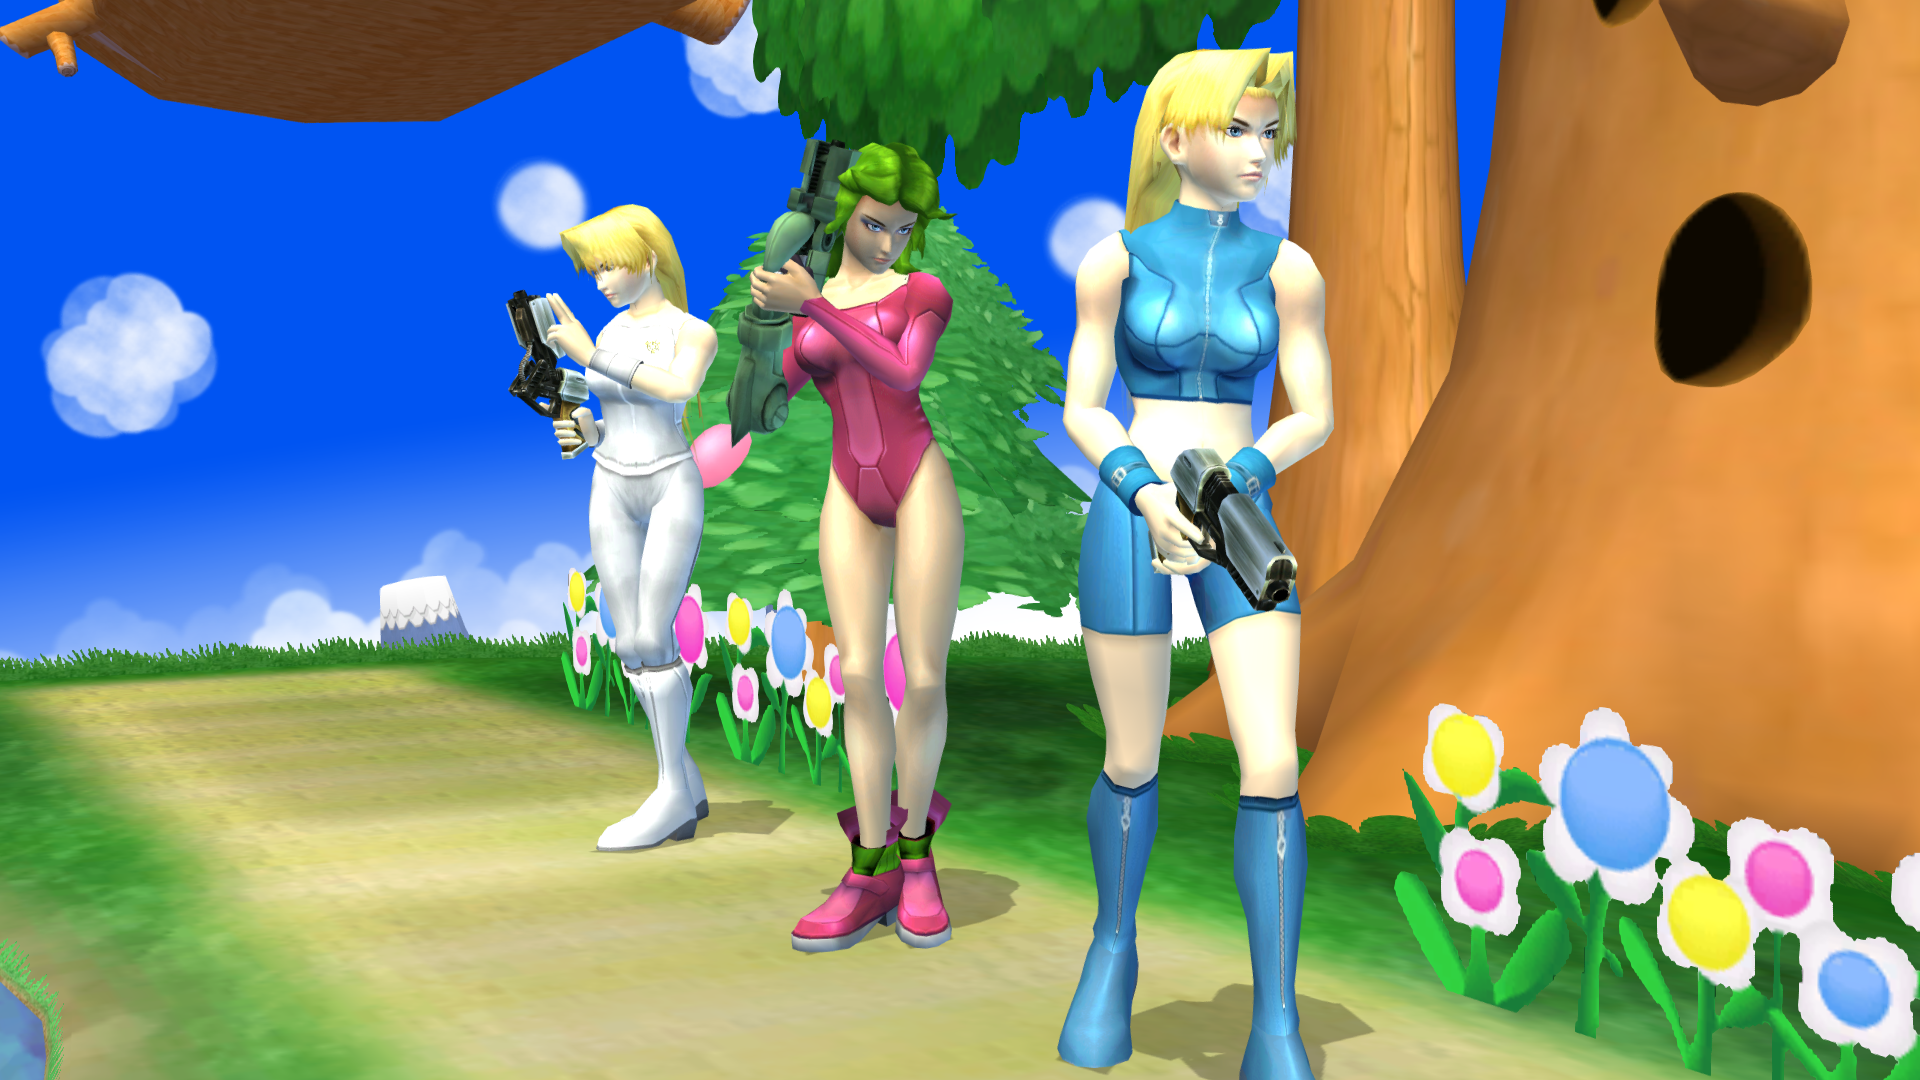 New Zero Suit Samus Costumes In Pm 3 5 Project M Know